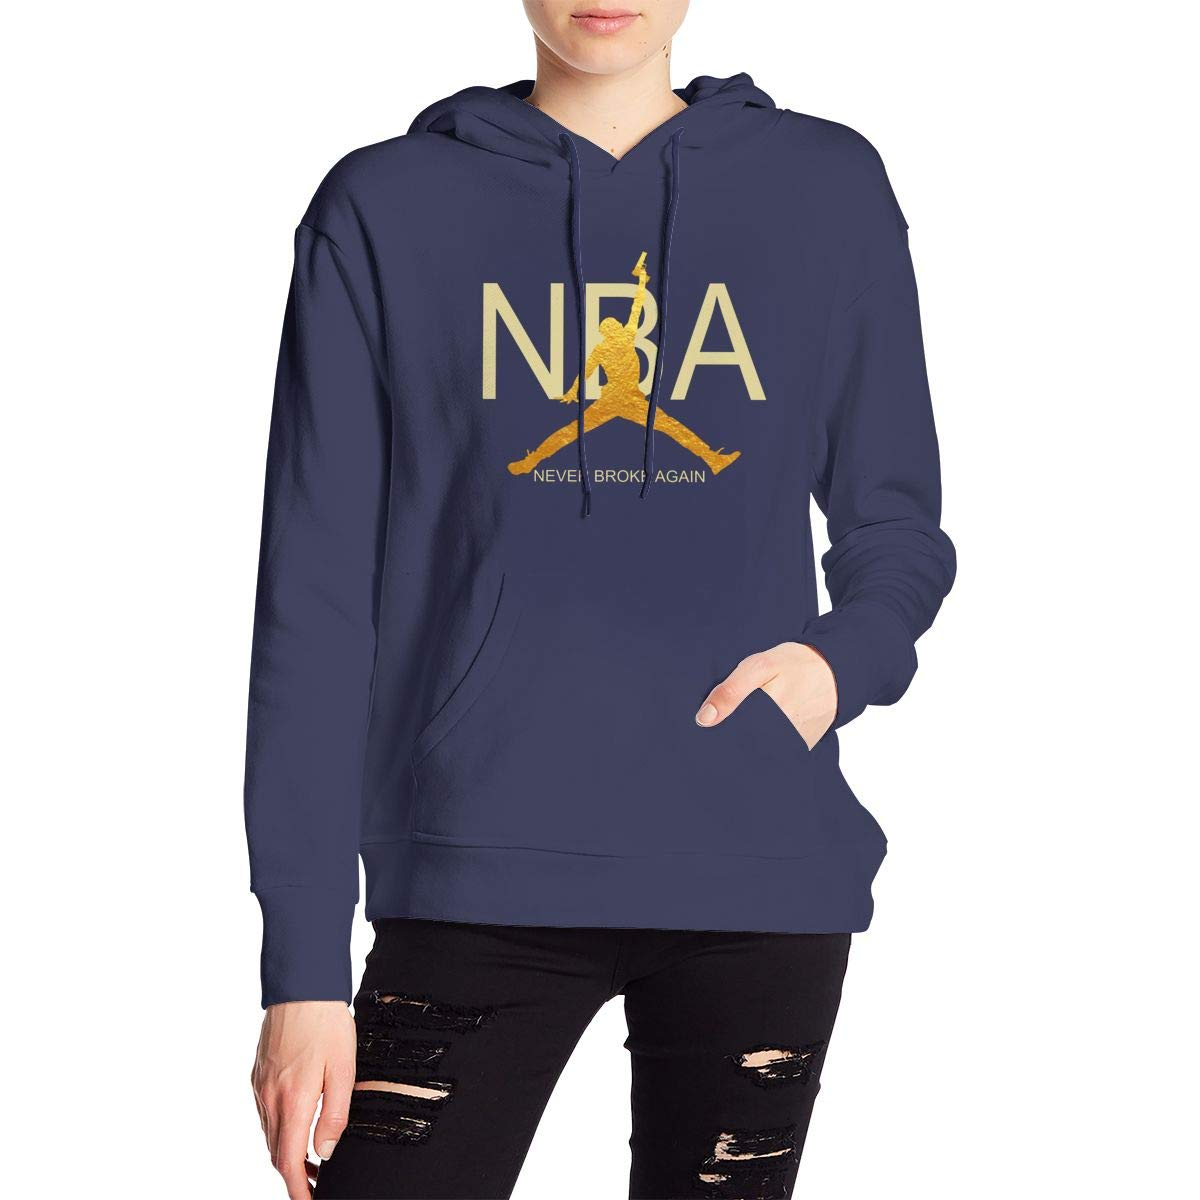 NBA Young-boy Theme Fashionable Beautiful Womens Hoodies